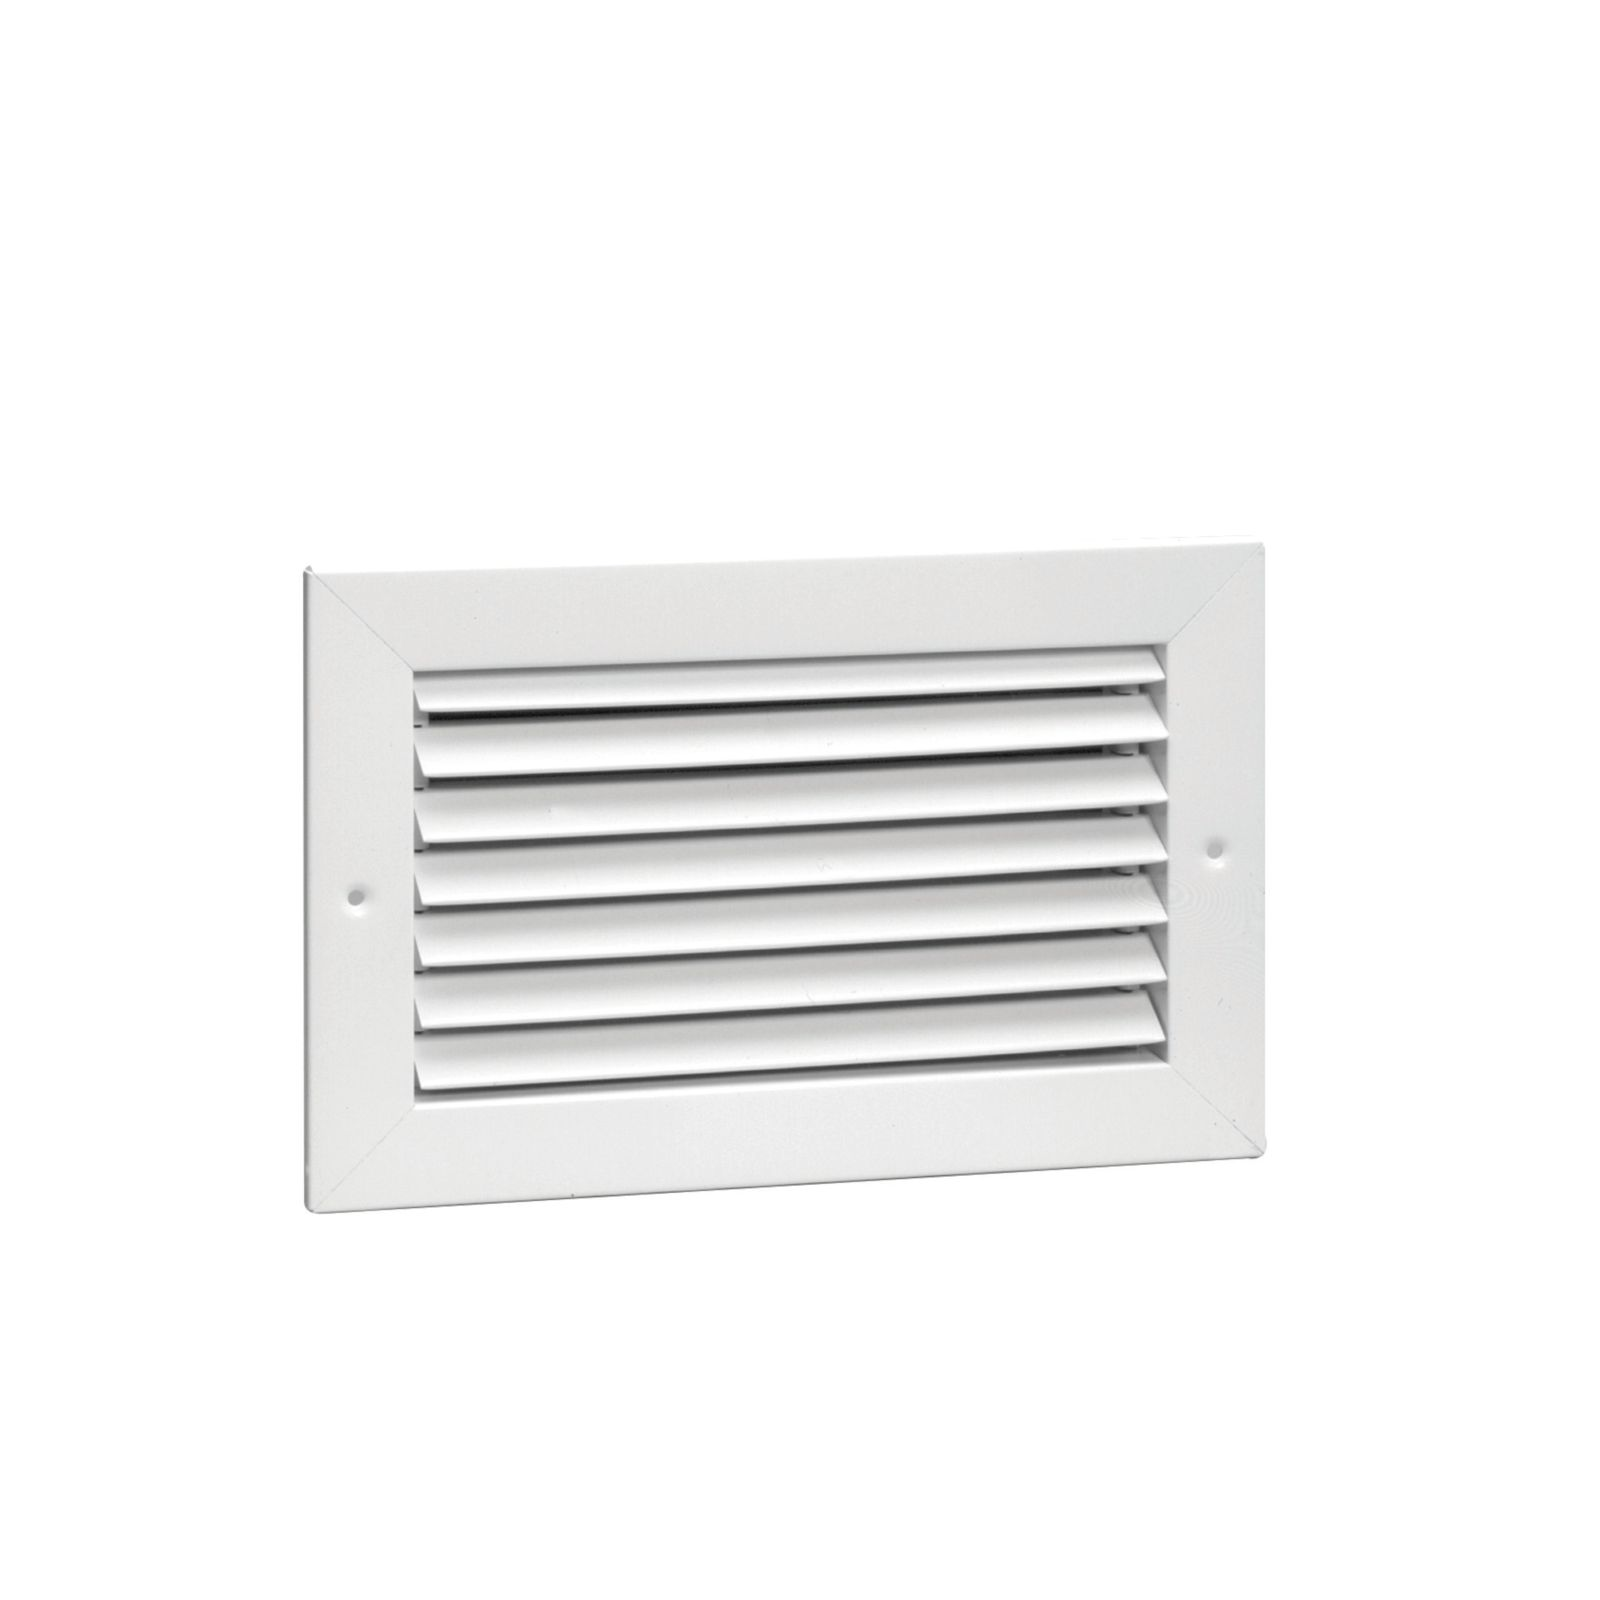 "Hart & Cooley 011803 - Steel Return Air Grille, 35-Degree Horizontal Fixed Blade, White Finish, 24"" X 20"""